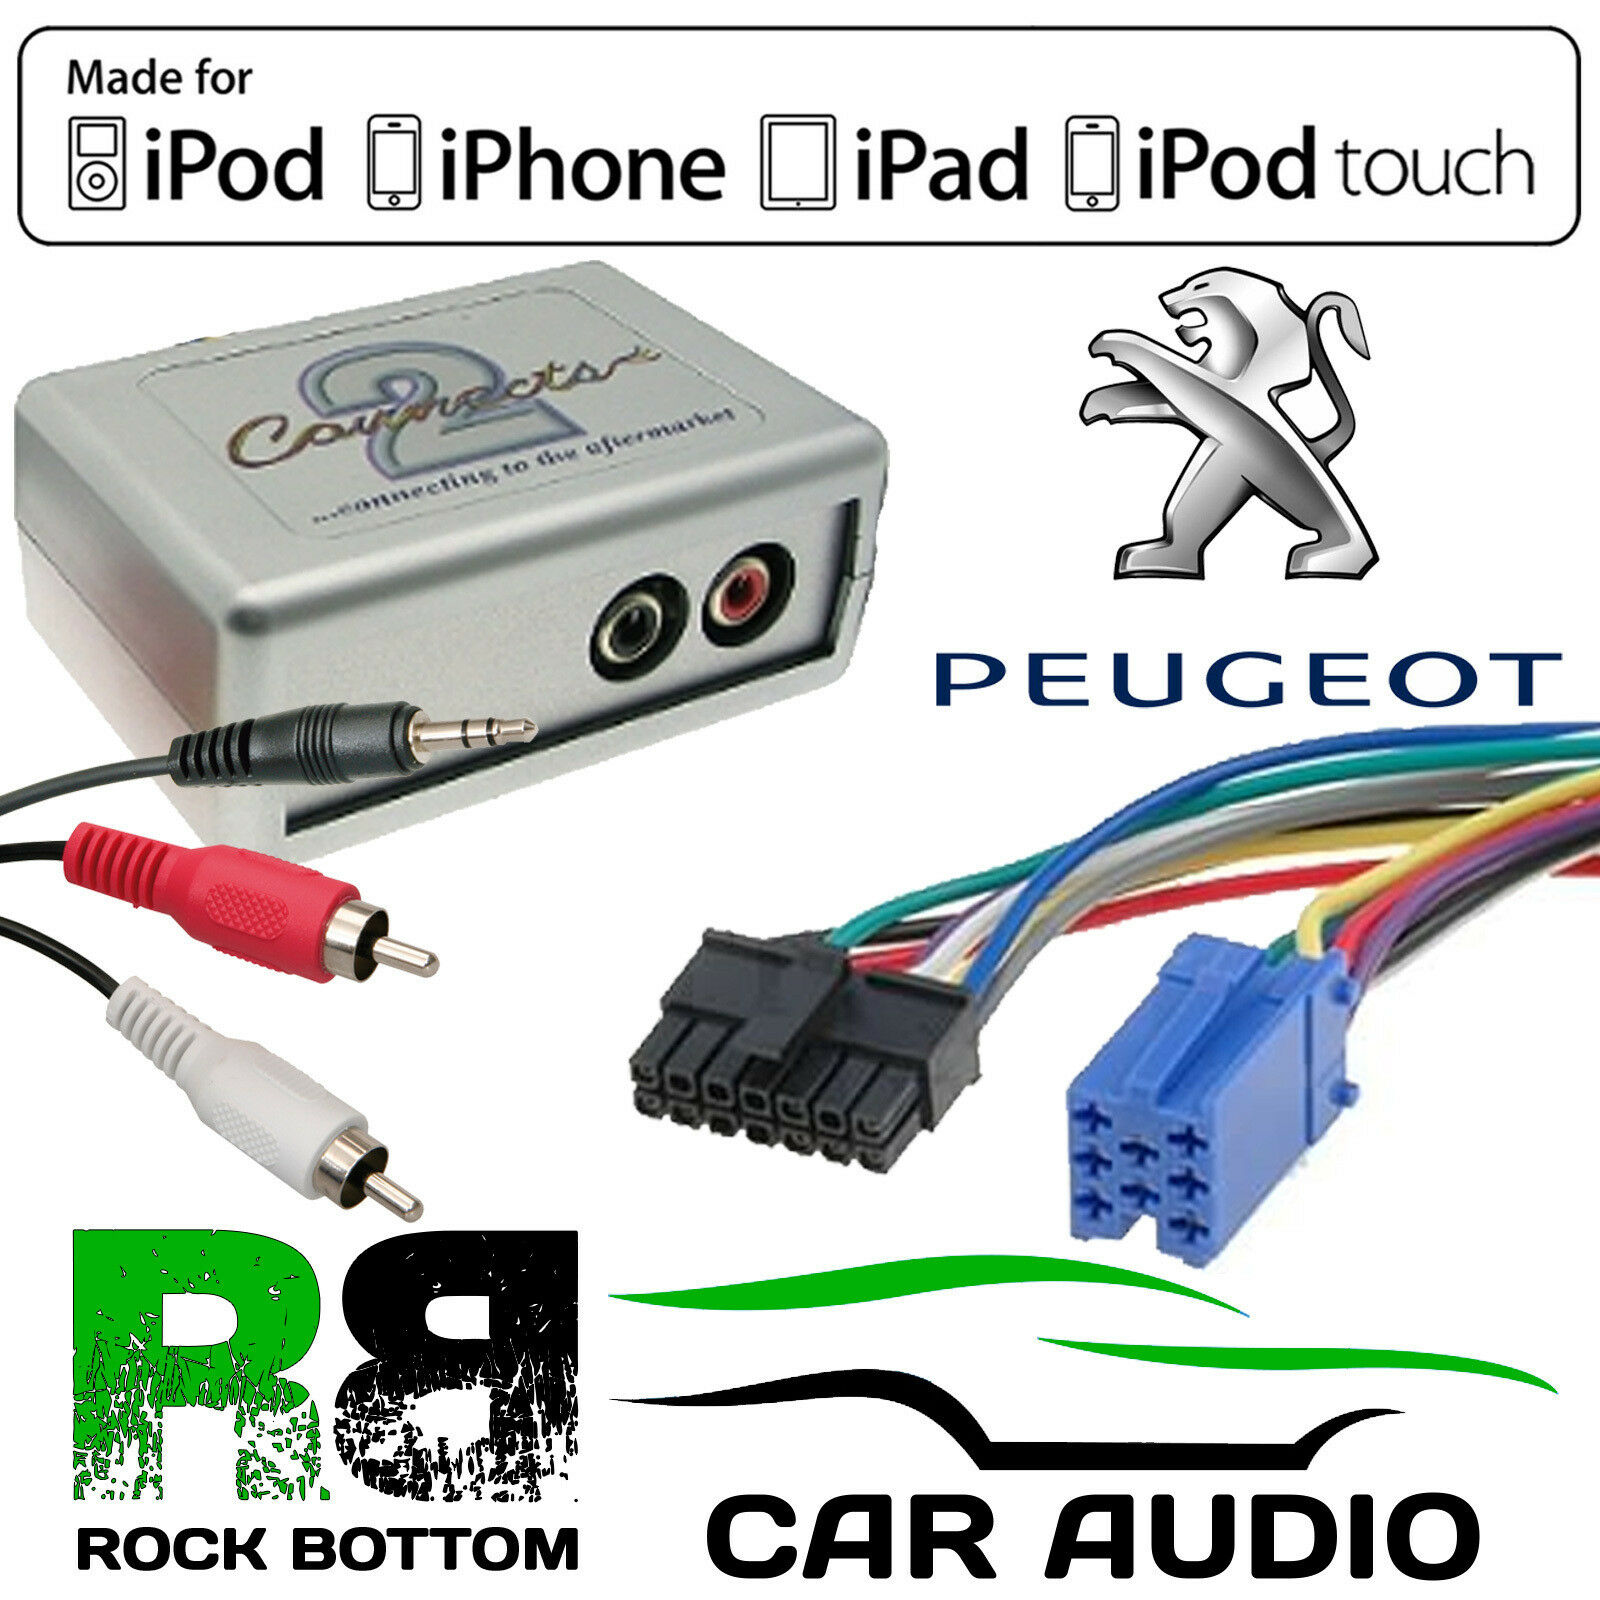 Connects2 Ctvpgx010 Ebay Iphone Ford Wiring Harness Kits Norton Secured Powered By Verisign